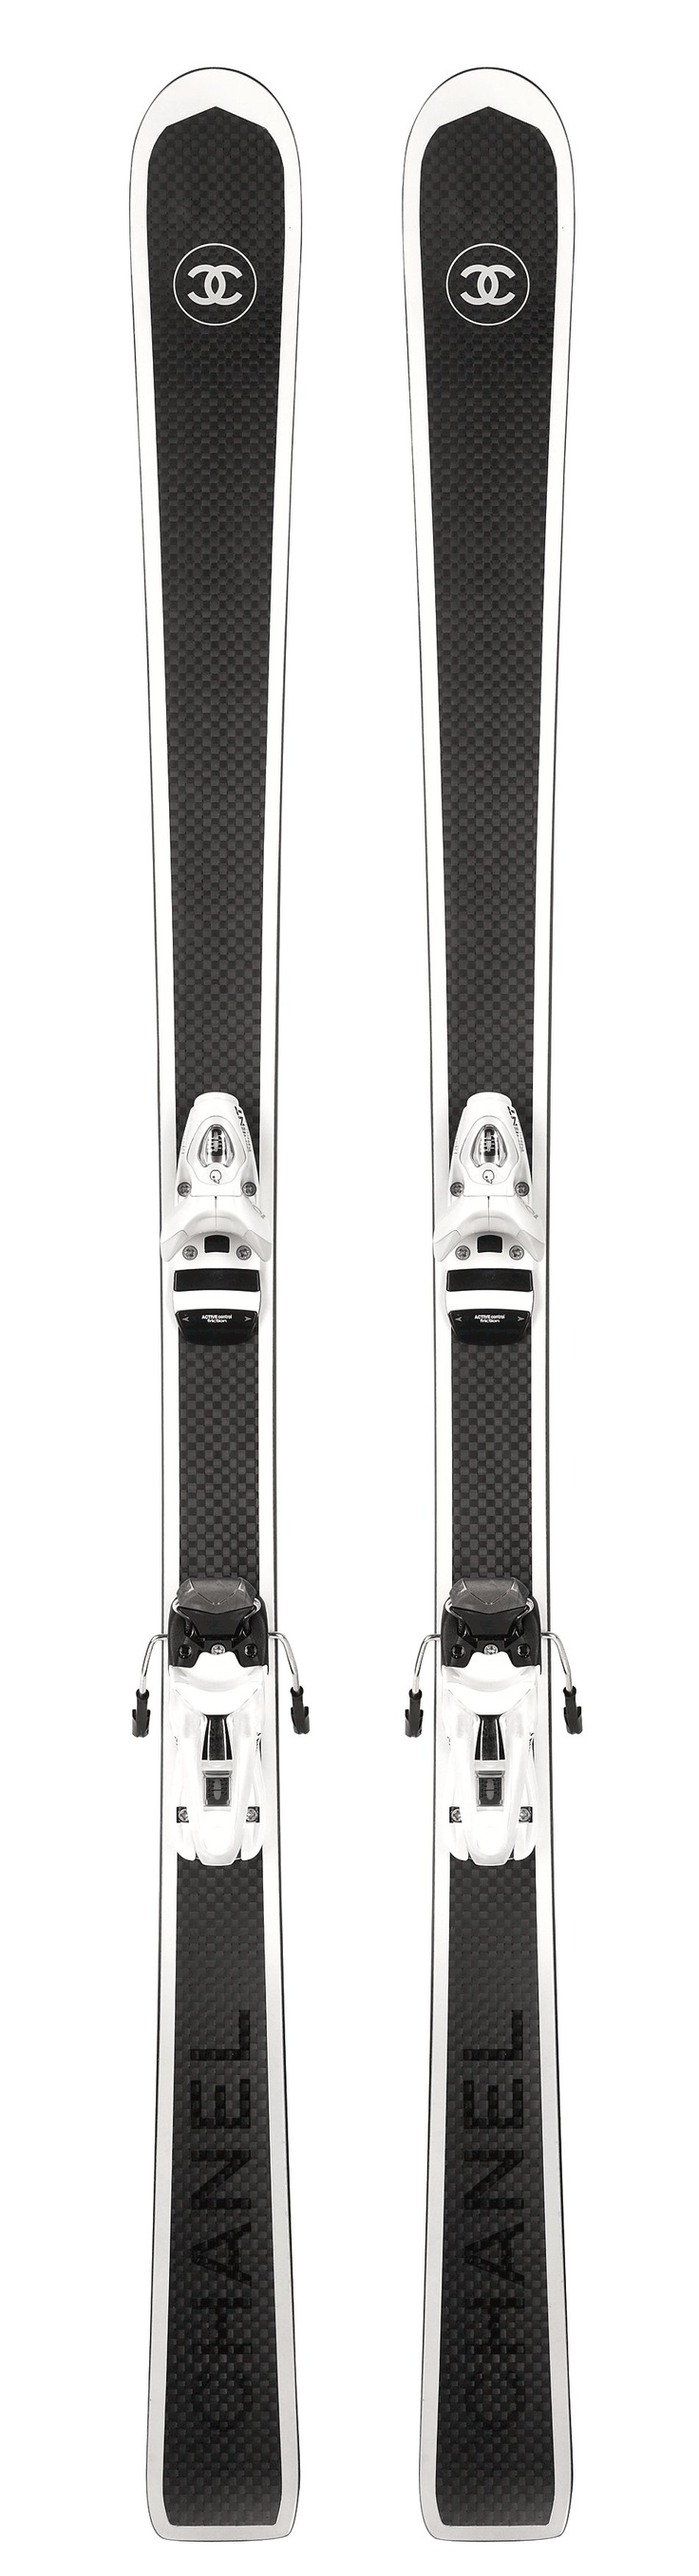 Every Glamazon Billionairess Needs Chanel Ski's To Stay Fabulous On The Slopes -ShazB  $3,600.  www.chanel.com